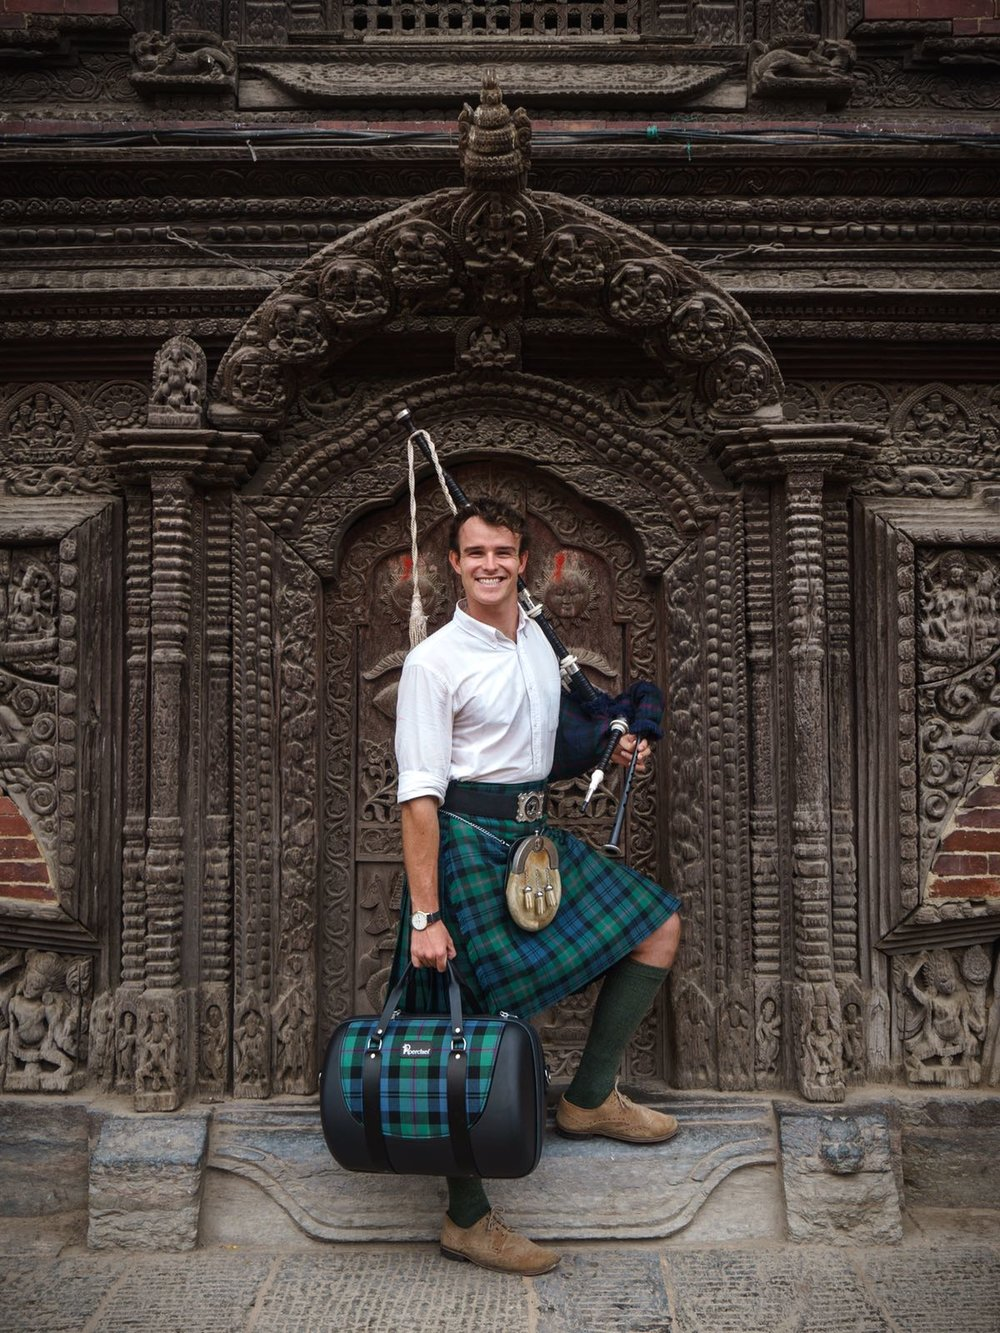 Adventures in Nepal - Ross OC Jennings takes the PiperChief on his journey piping around the world...